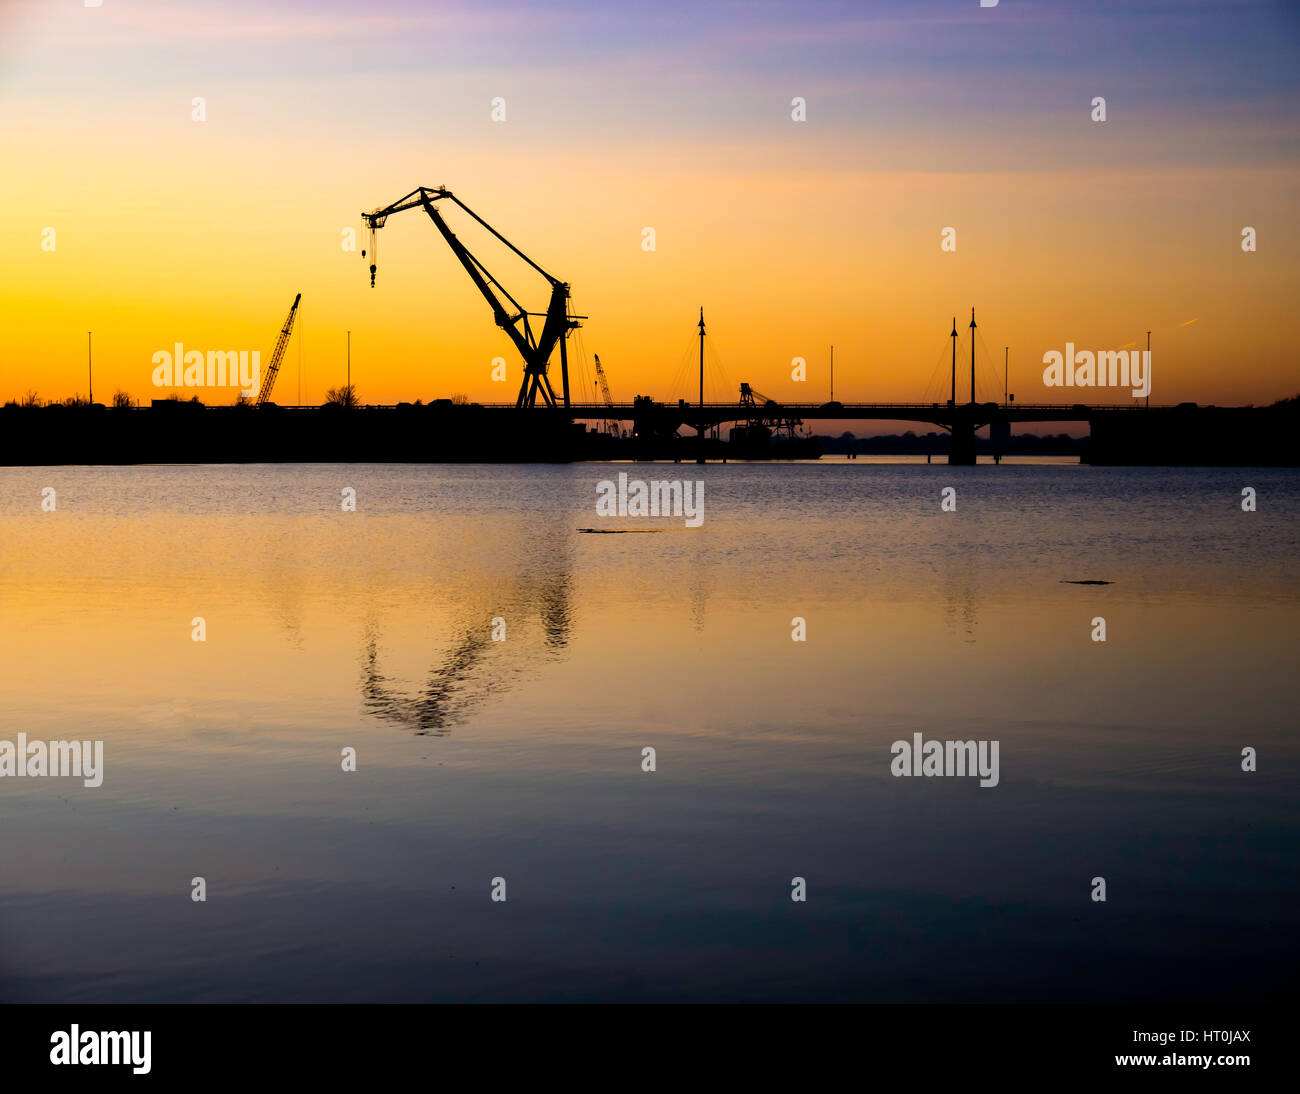 the-canute-crane-stands-tall-over-portsmouth-harbour-and-the-m275-HT0JAX.jpg